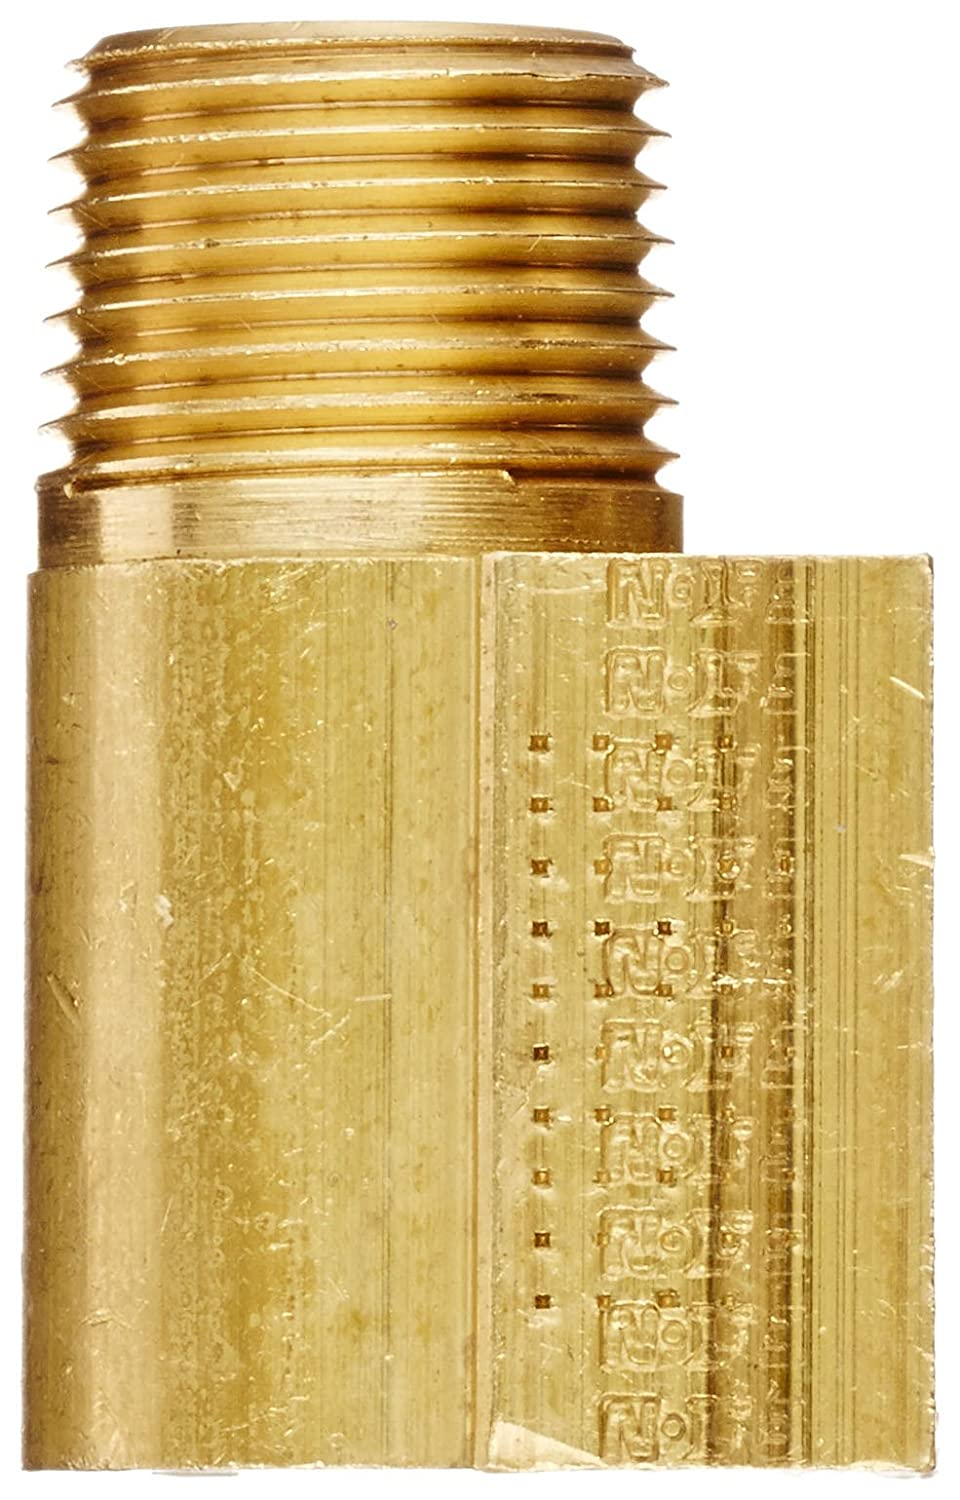 90 Degree Elbow Eaton Weatherhead 402X8 Brass CA360 Inverted Flare Brass Fitting 3//8 NPT Male x 1//2 Tube OD